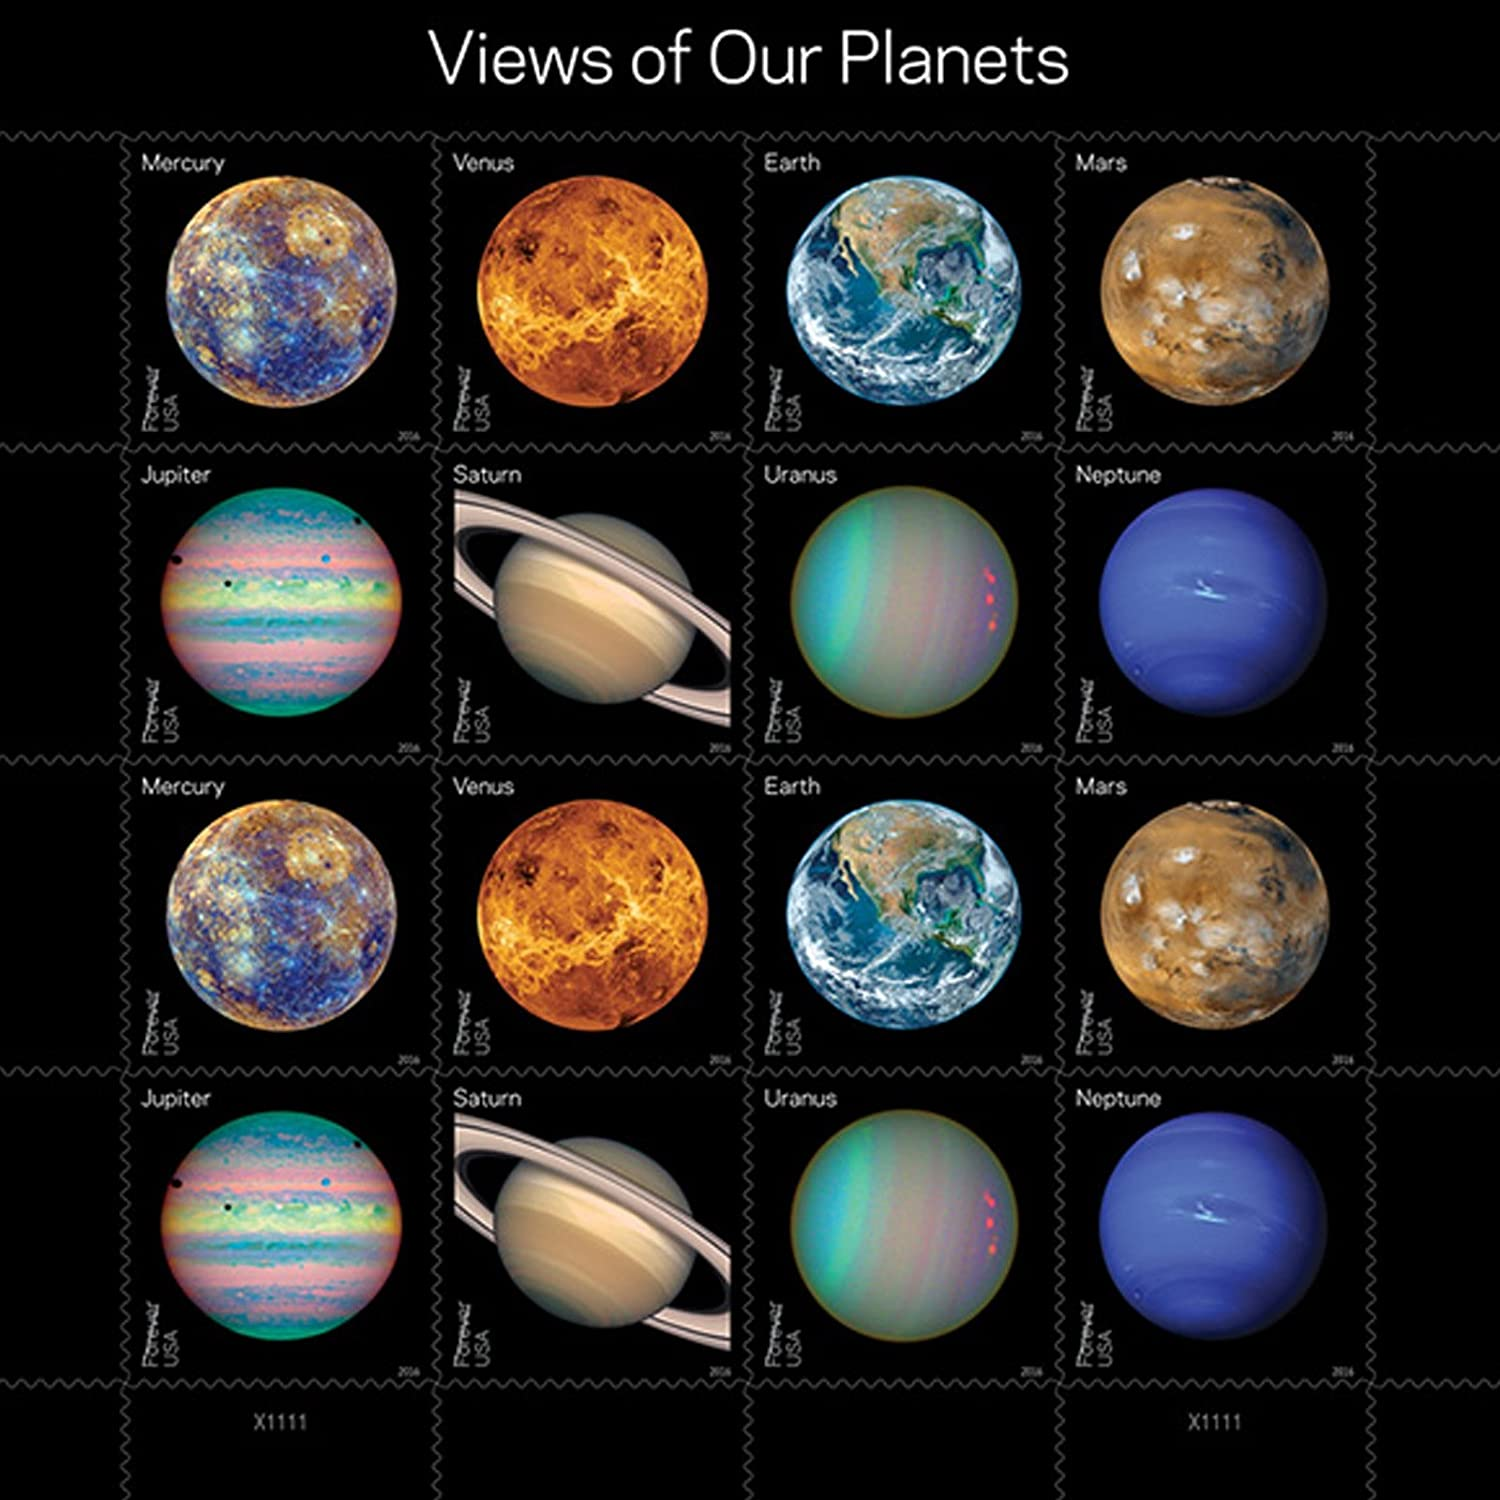 amazon com views of our planets usps forever postage stamps